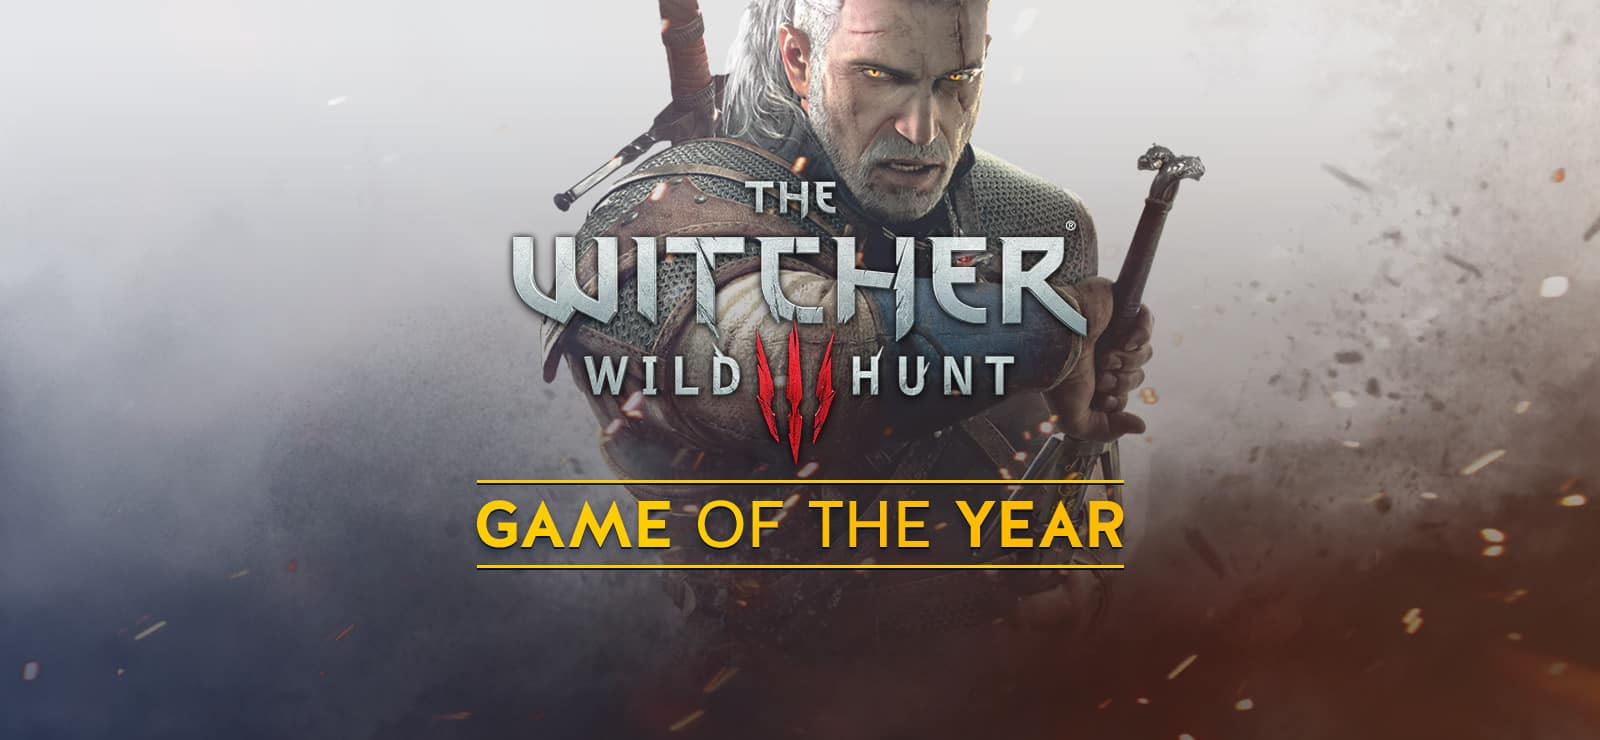 GOG - Witcher 3 GOTY $14.99 and other titles up to 90% off